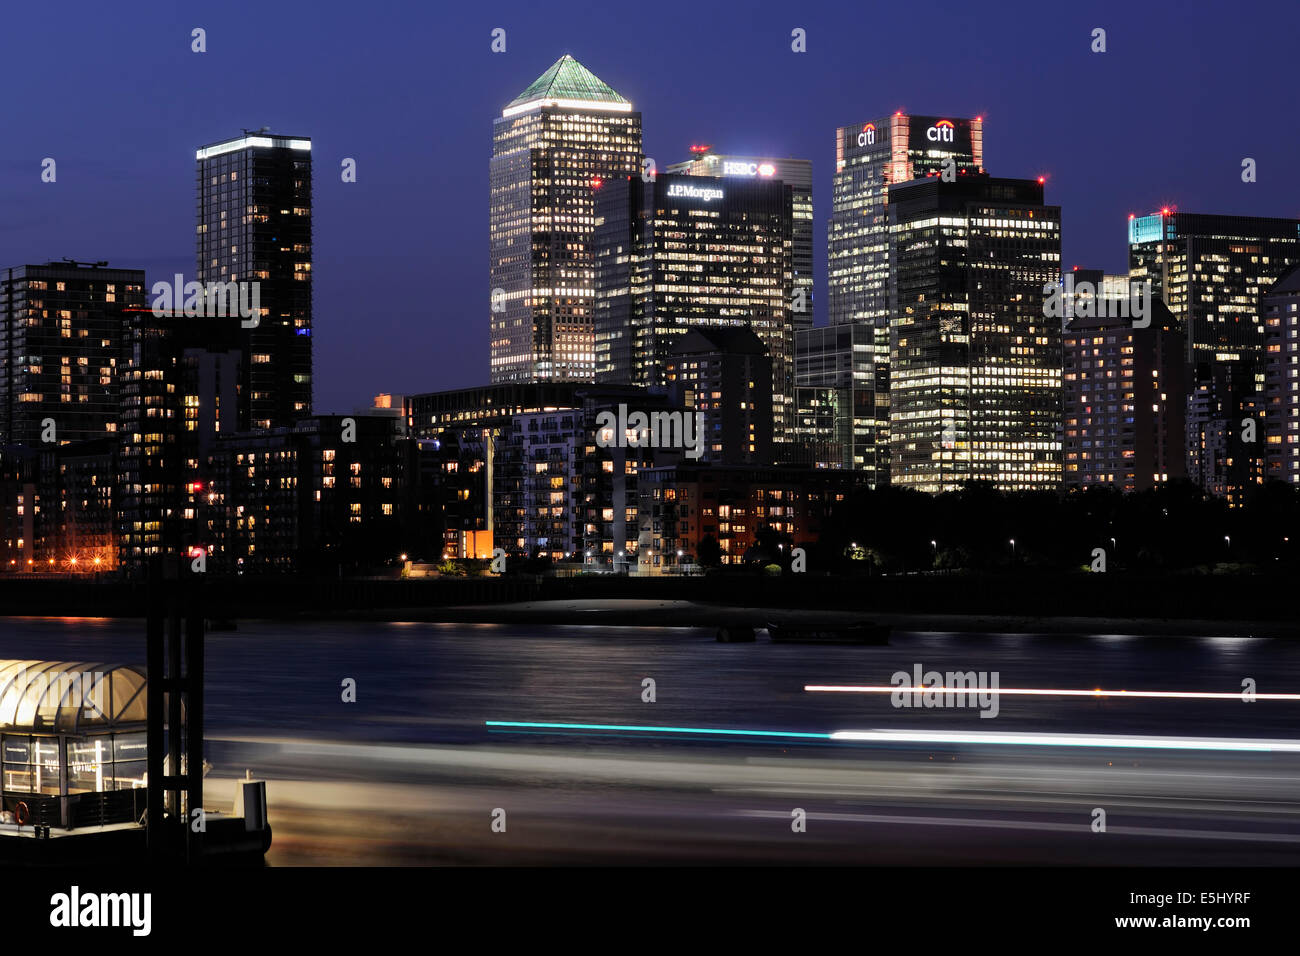 Canary Wharf London UK illuminated at night, with river